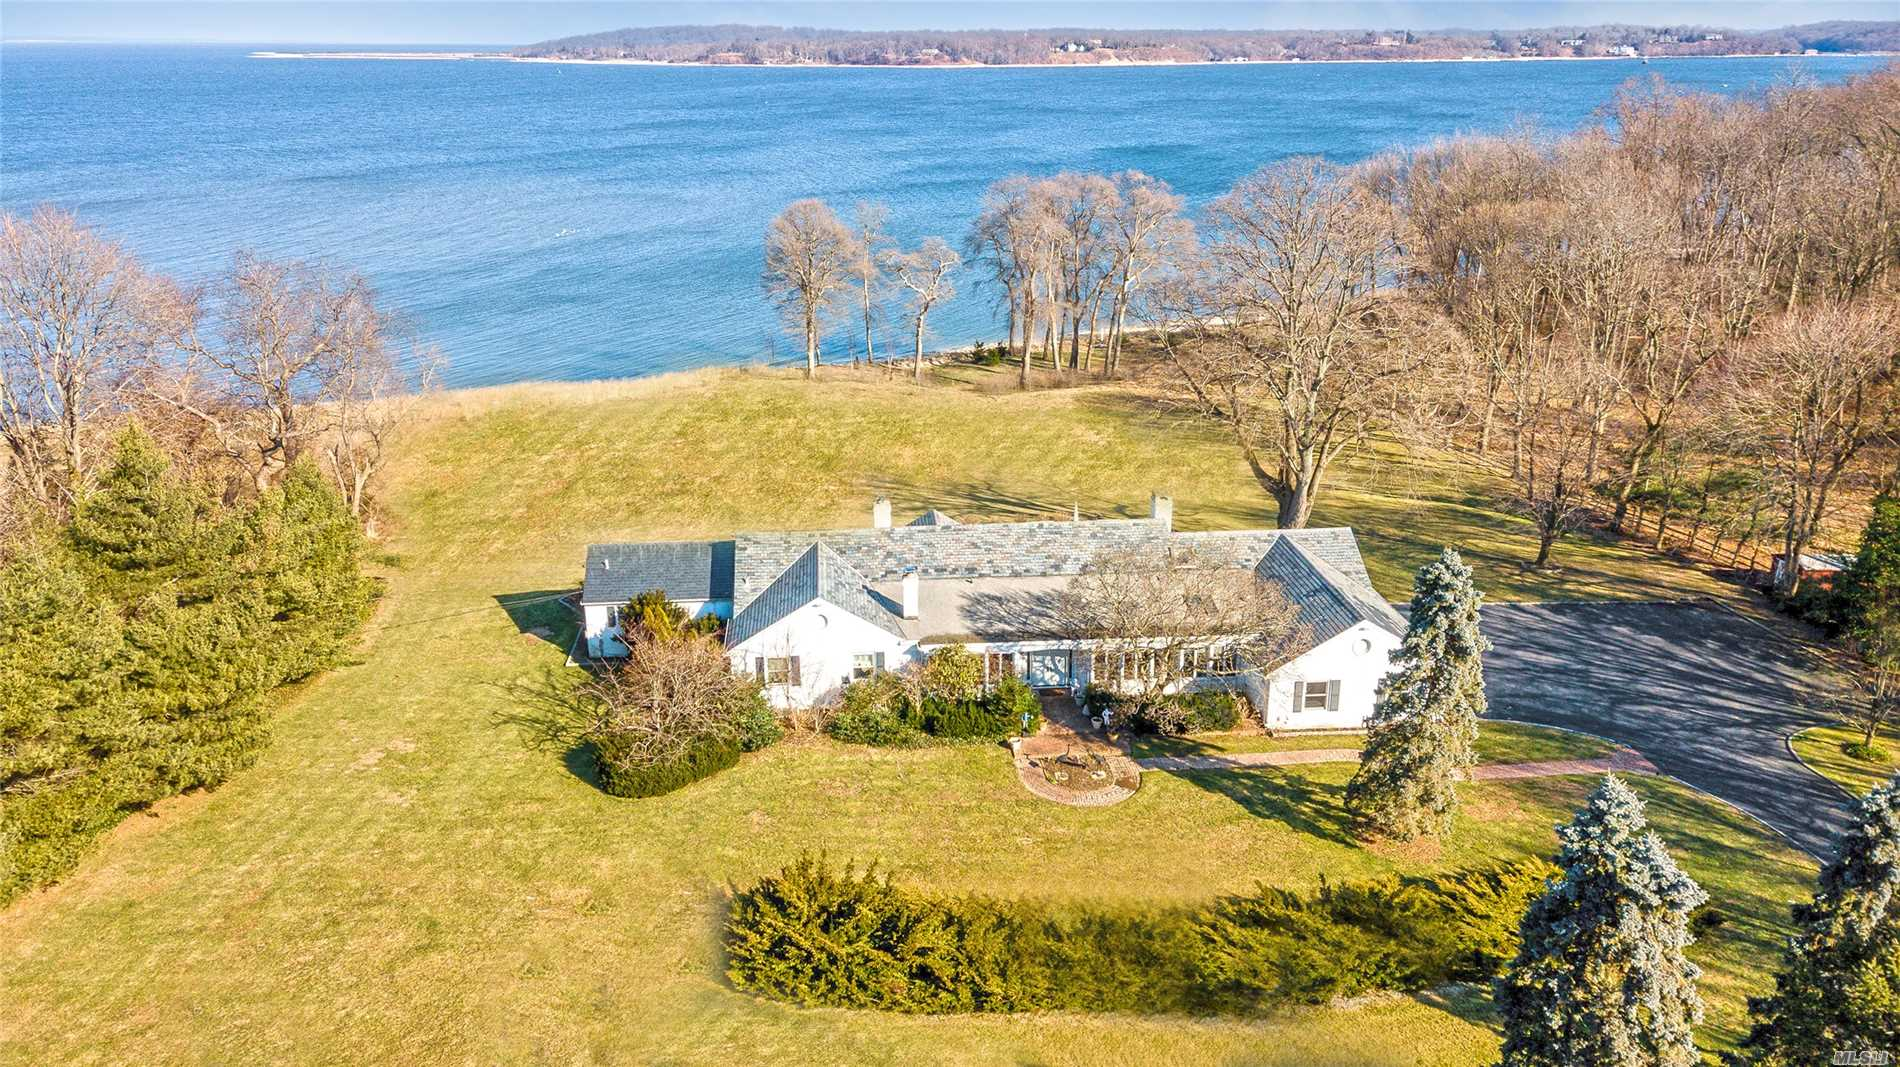 109 Centre Island Rd - Oyster Bay, New York